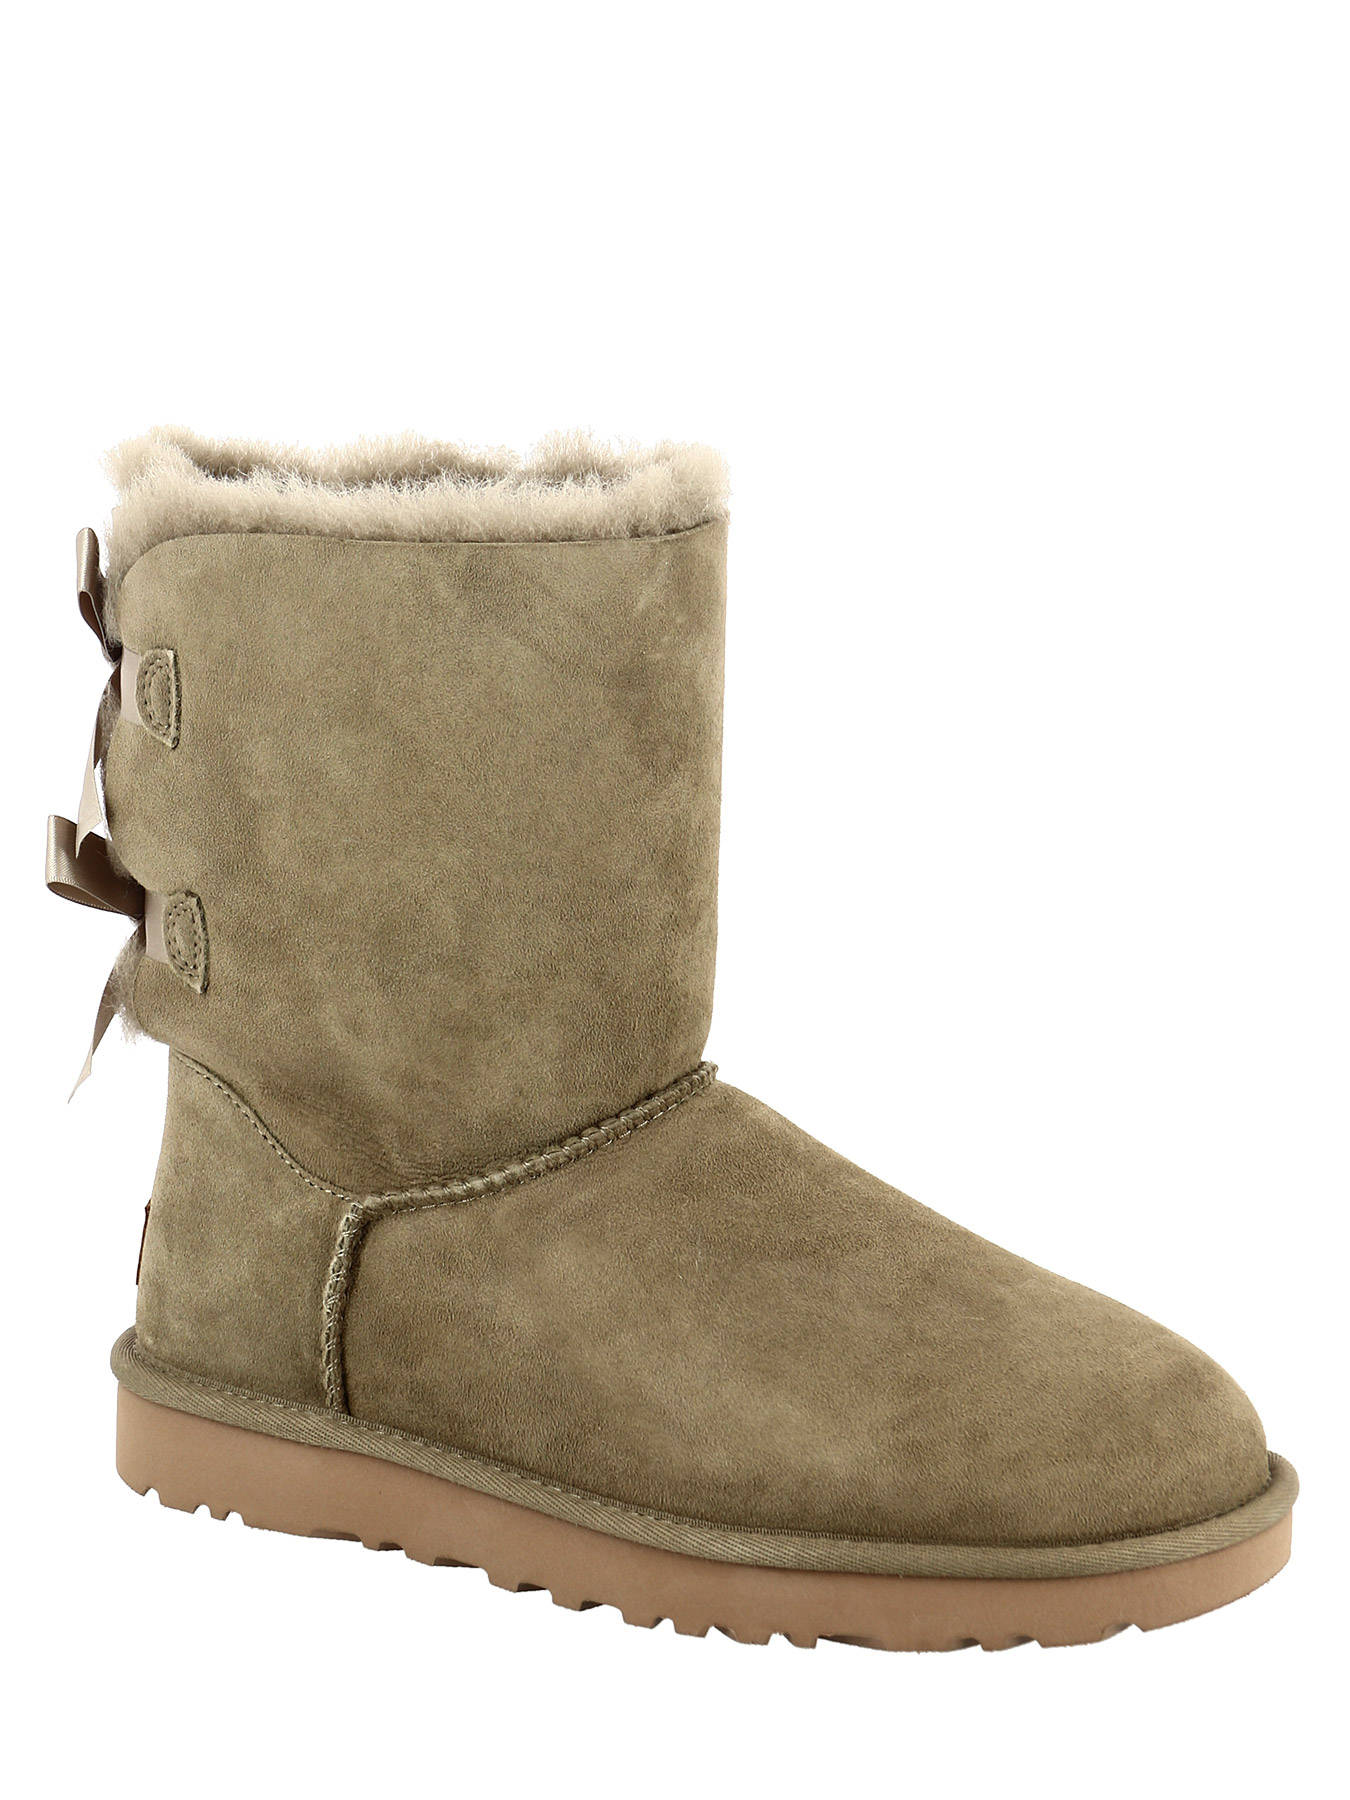 ugg pas cher taille 40